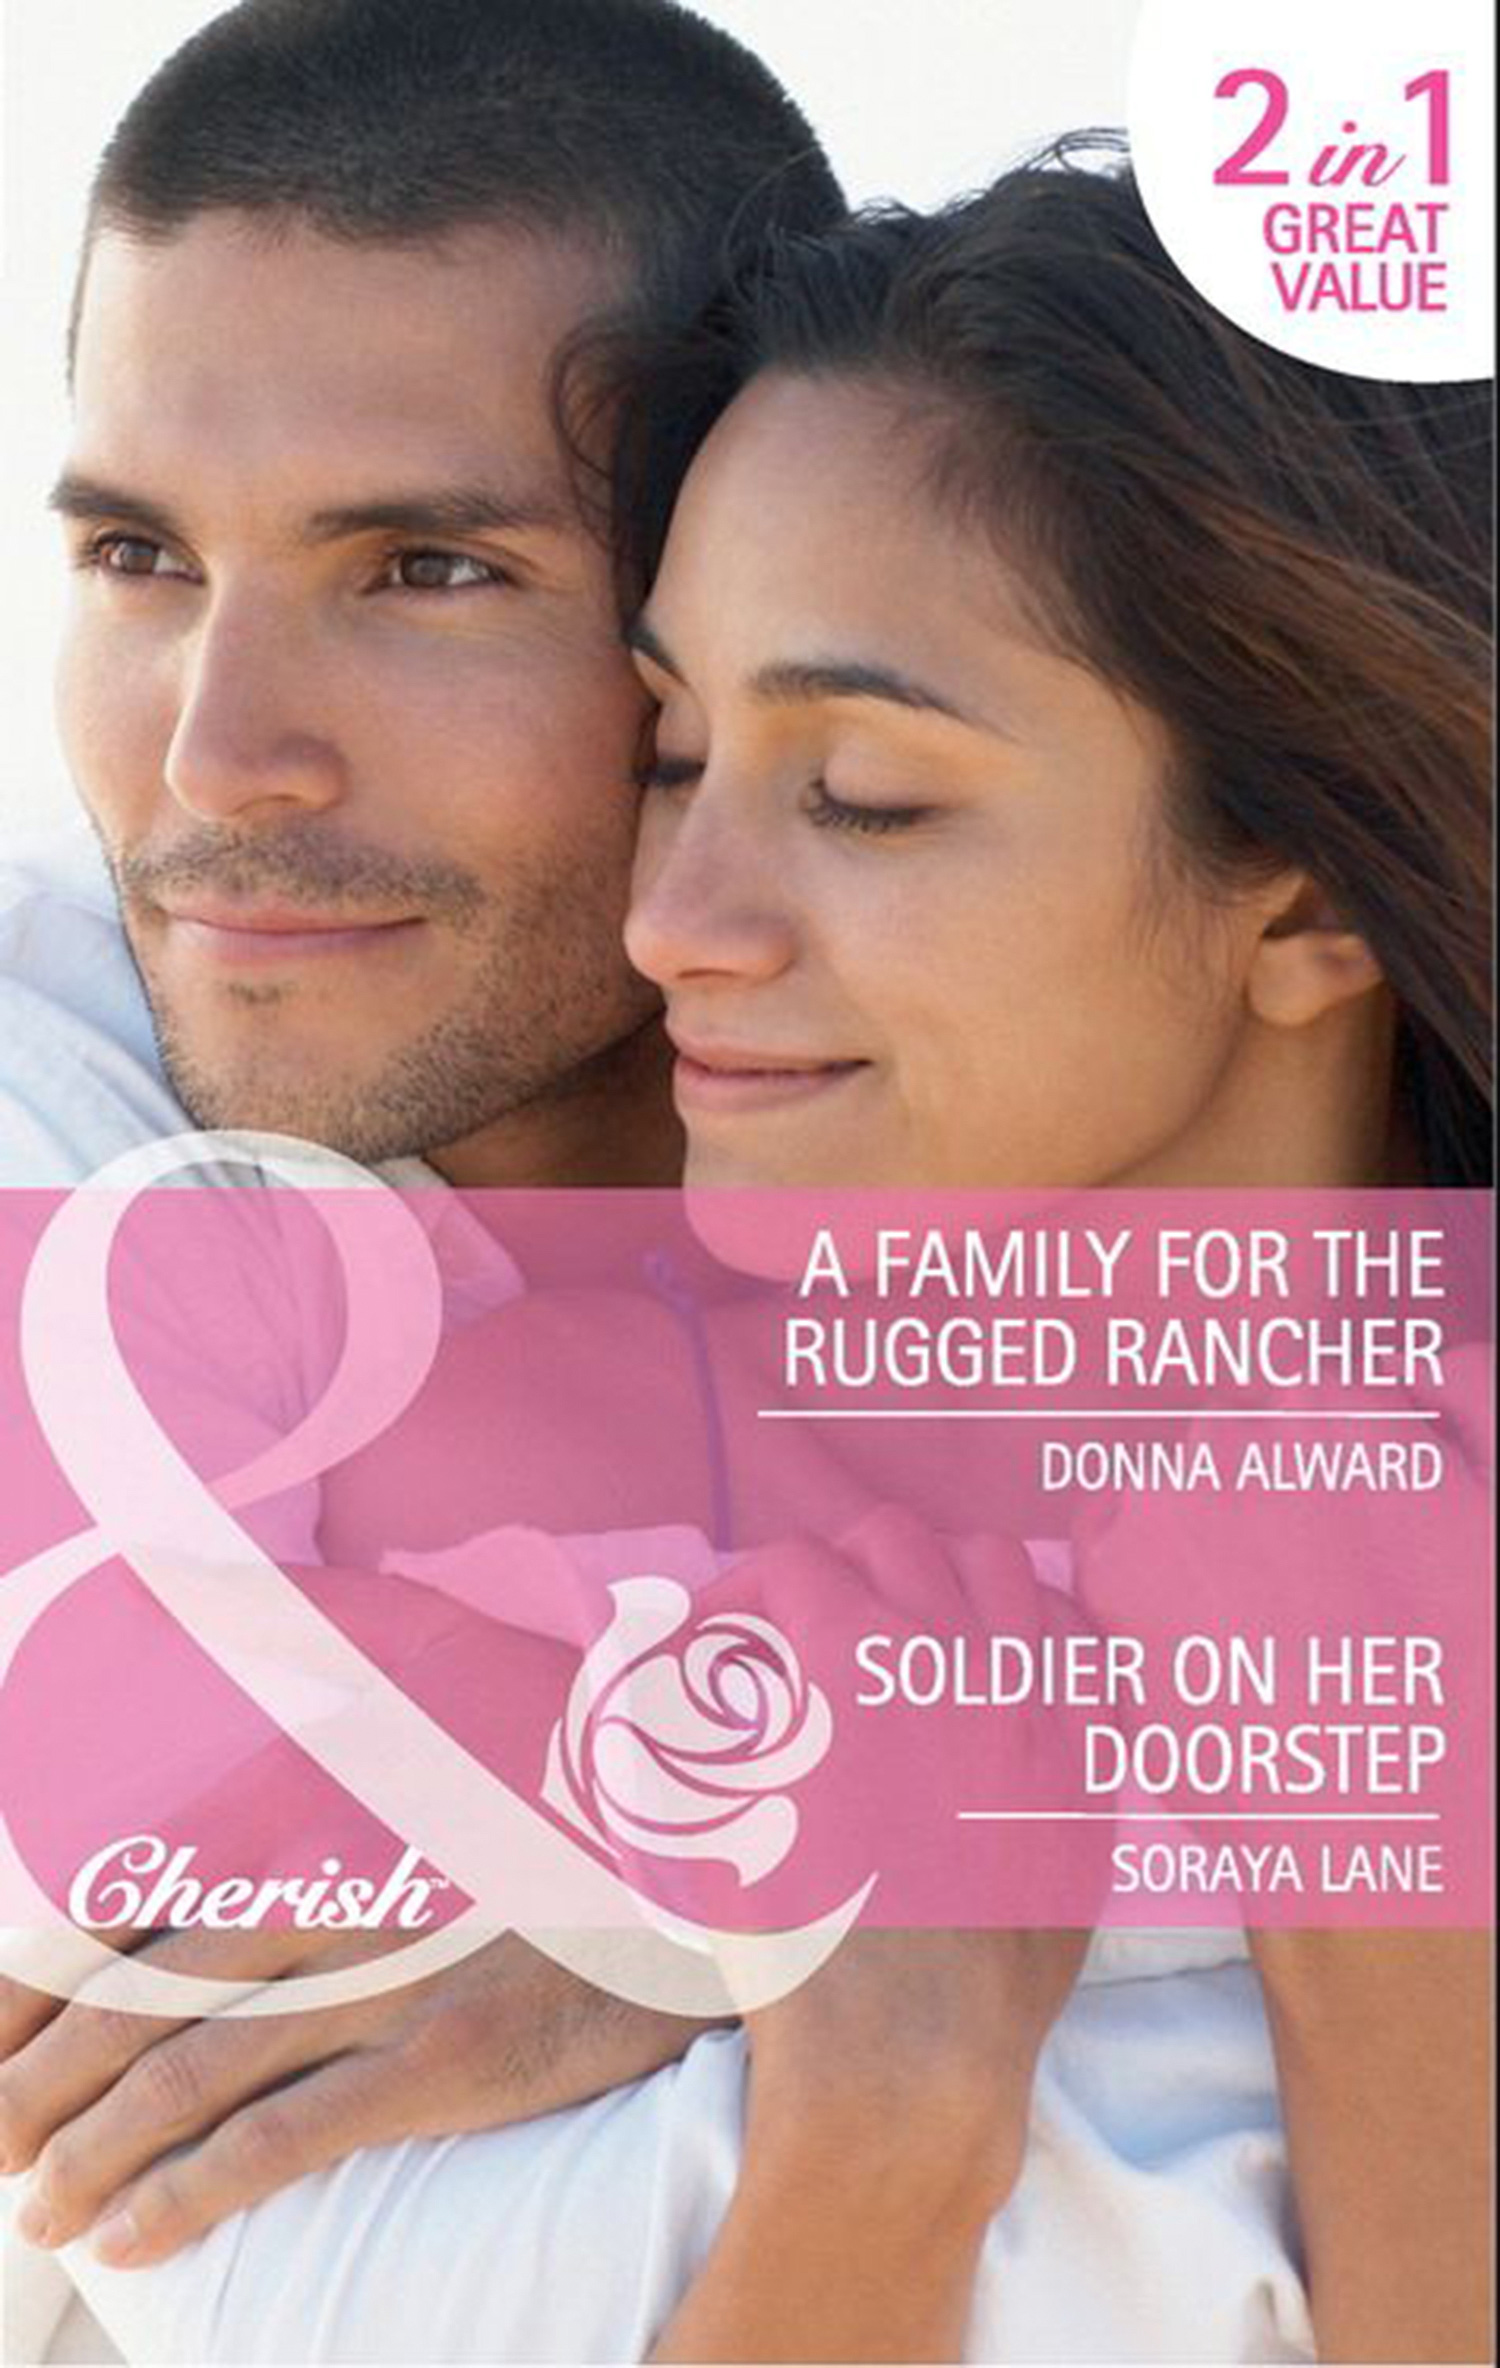 A Family for the Rugged Rancher / Soldier on Her Doorstep